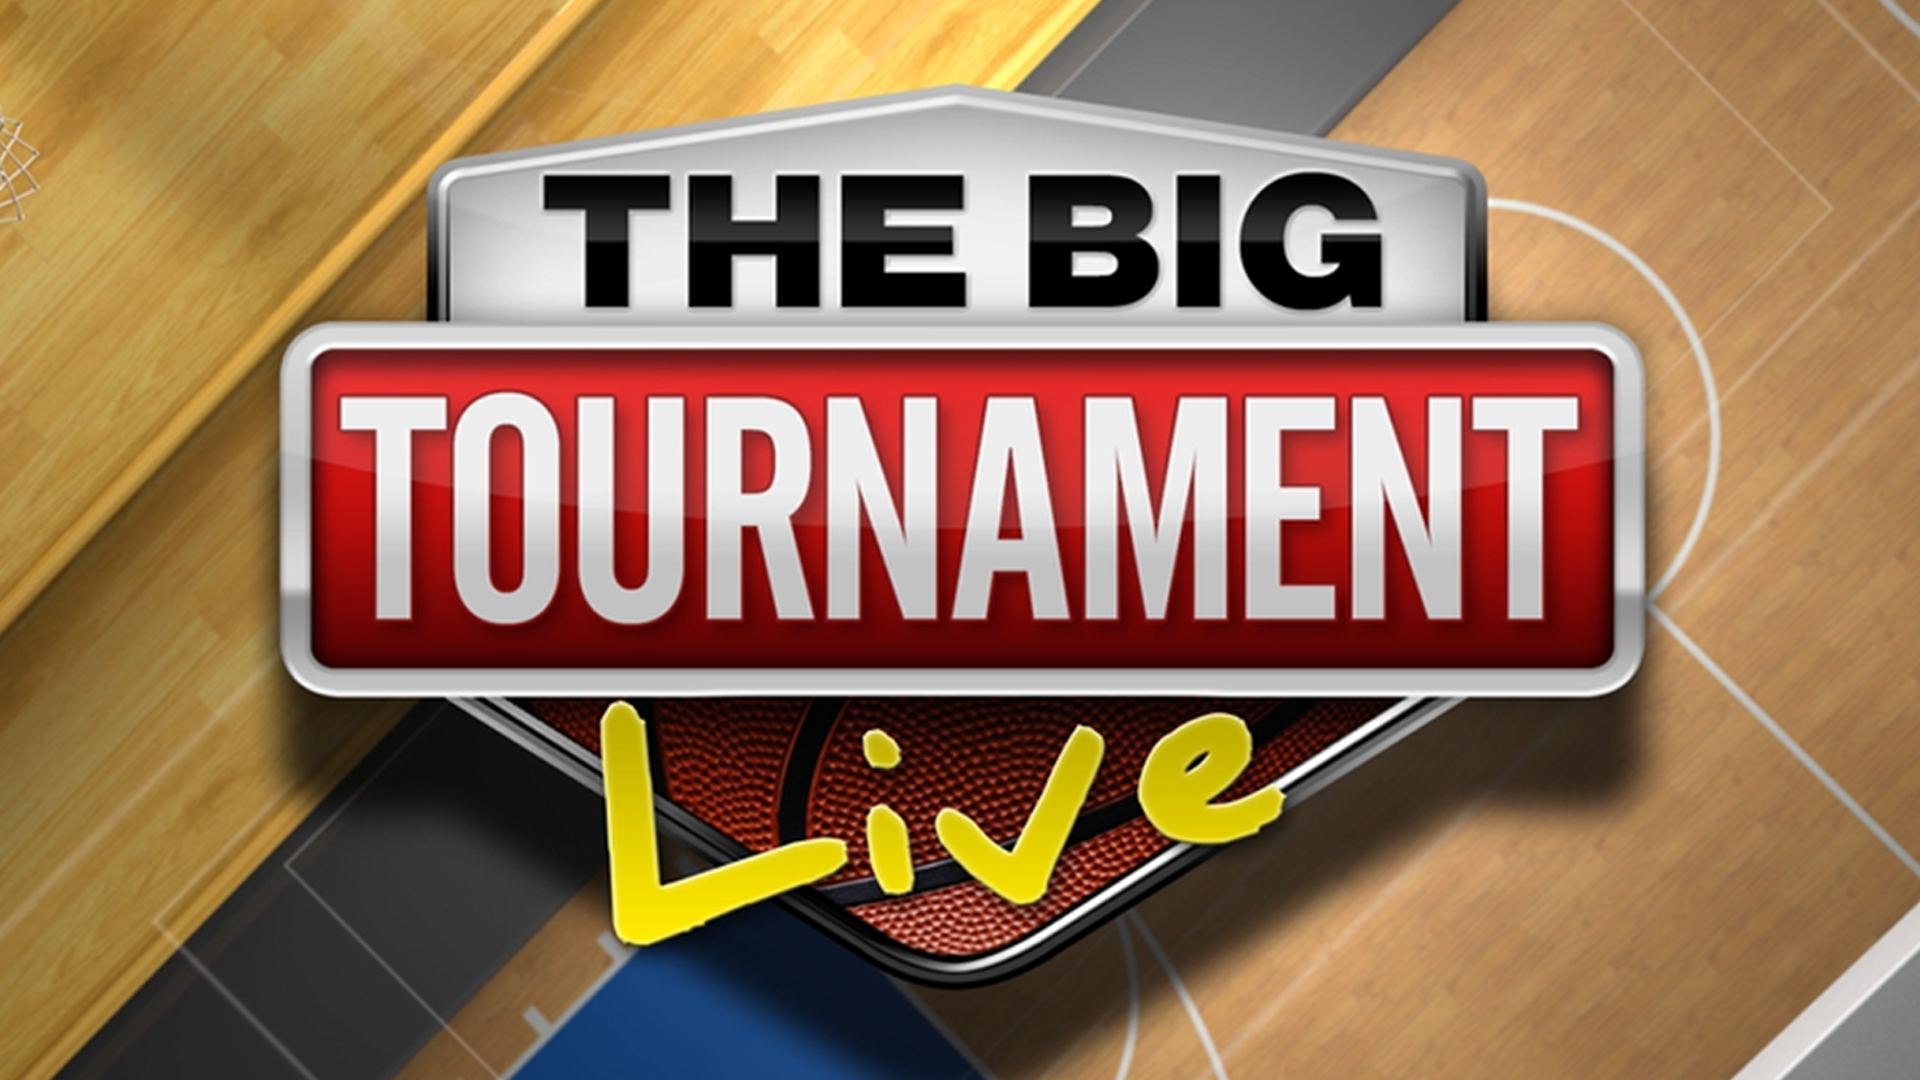 the big tournament live_1553176949636.png-873772846.jpg